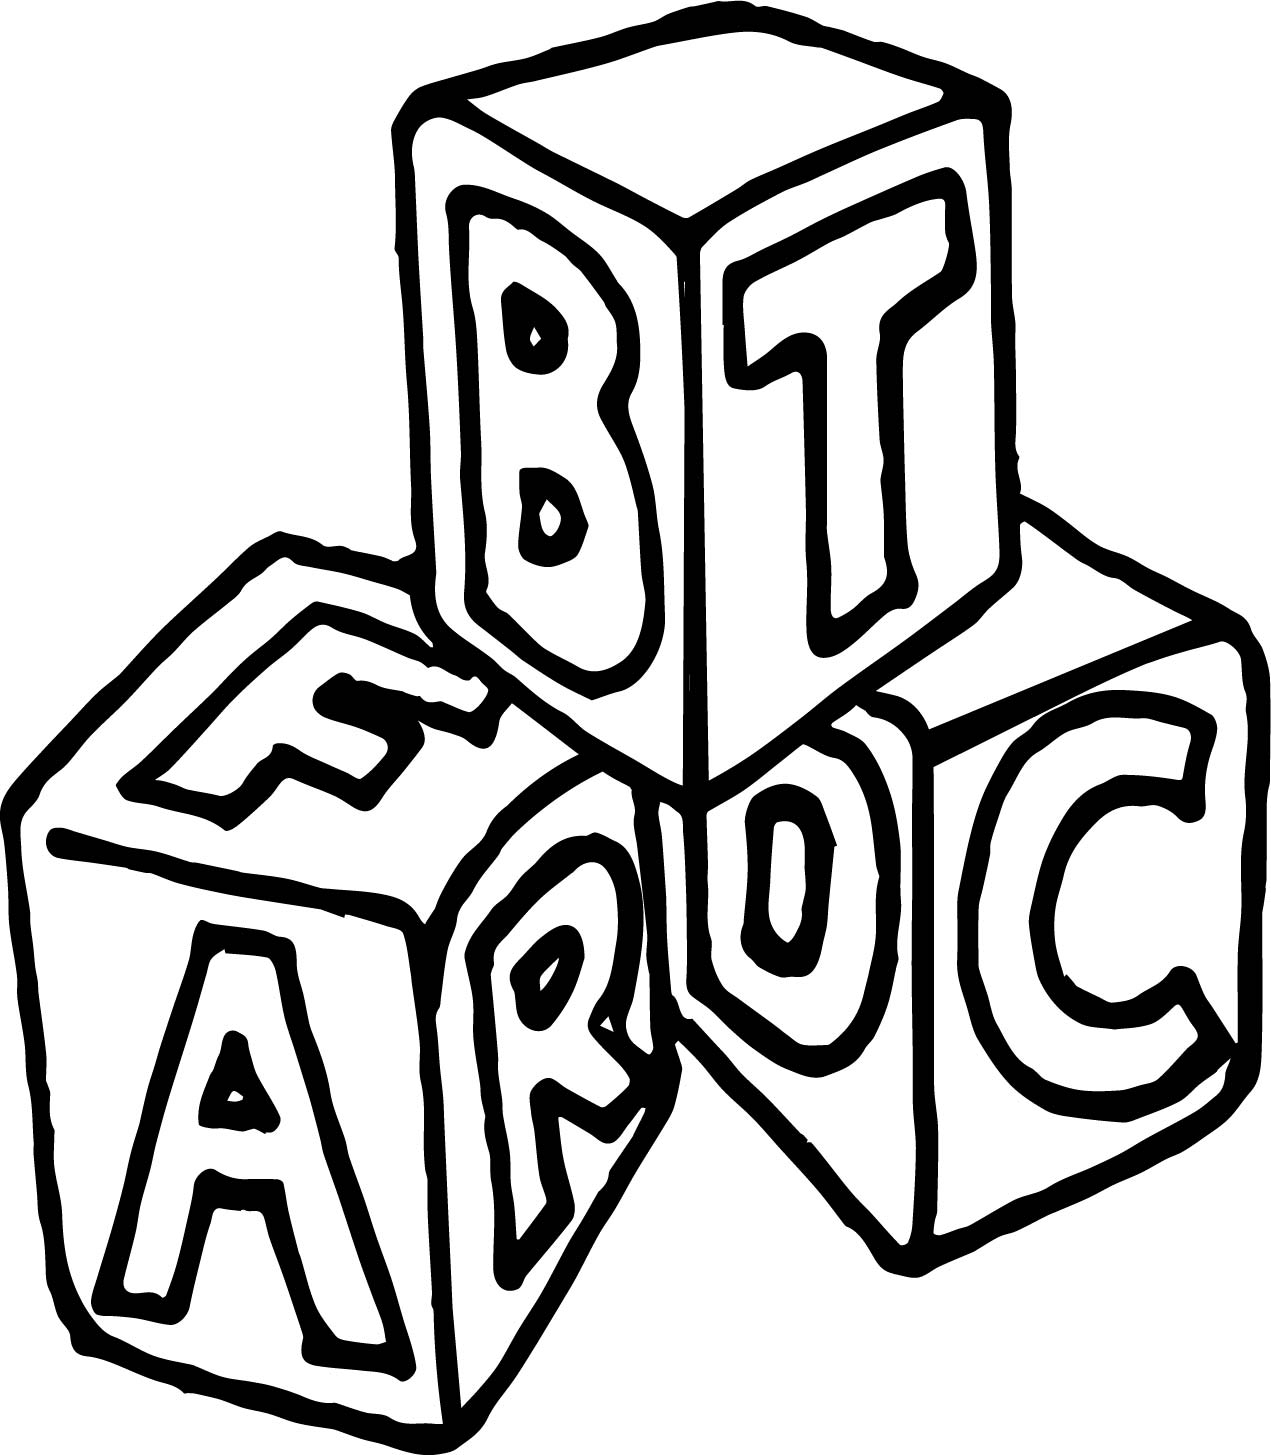 a b c box cube coloring page wecoloringpage